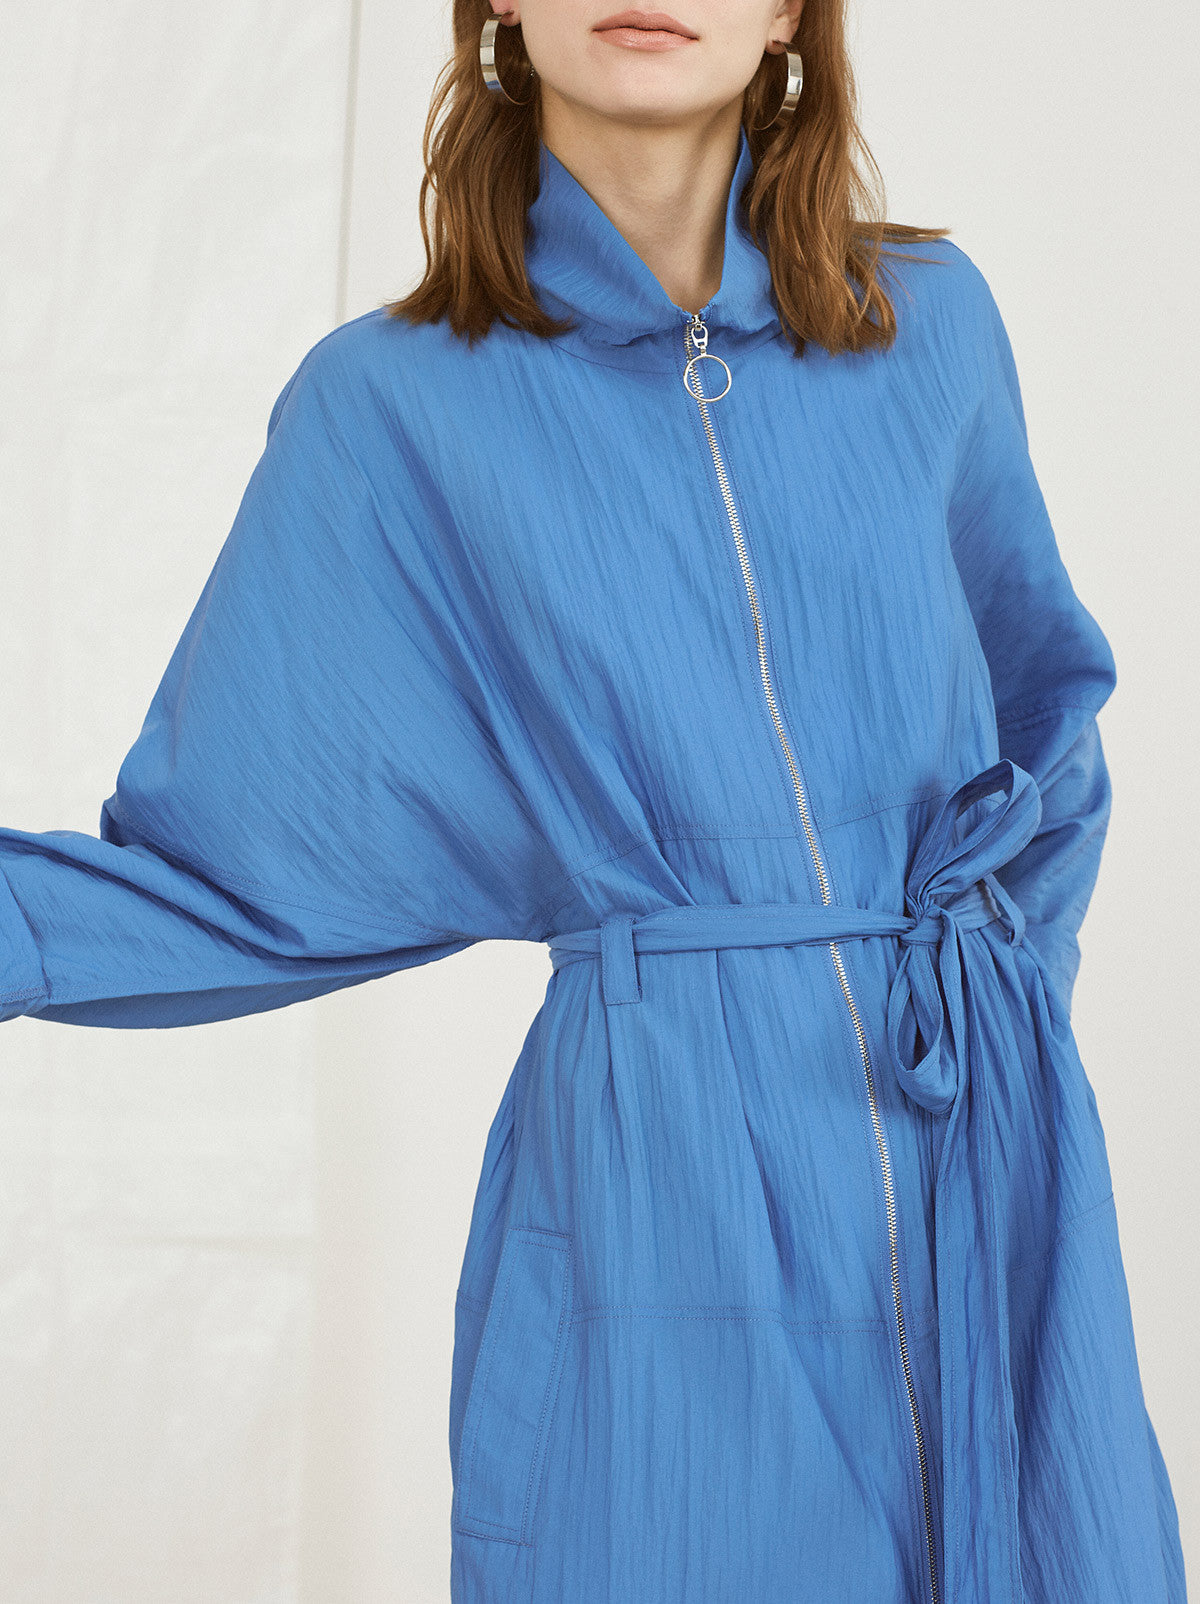 Laura Anorak Dress